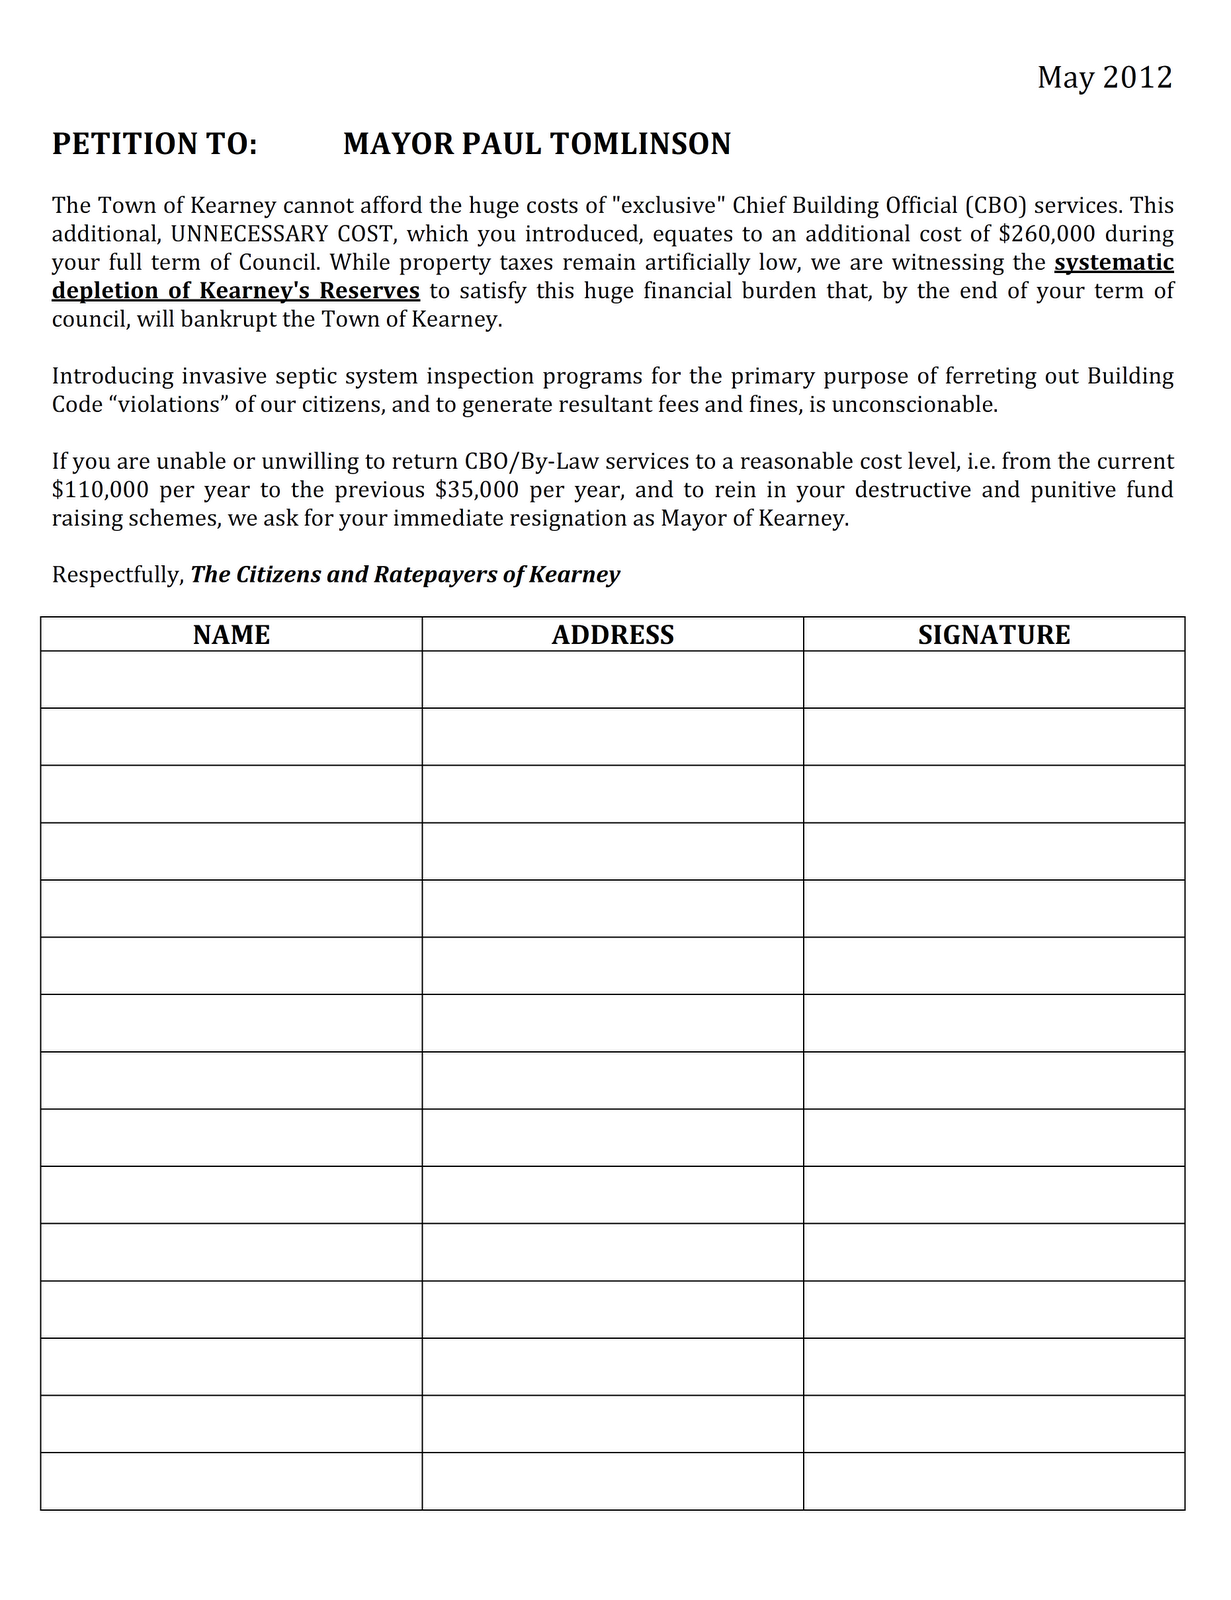 Kearney Concerned Citizens: Petition to Mayor Paul Tomlinson